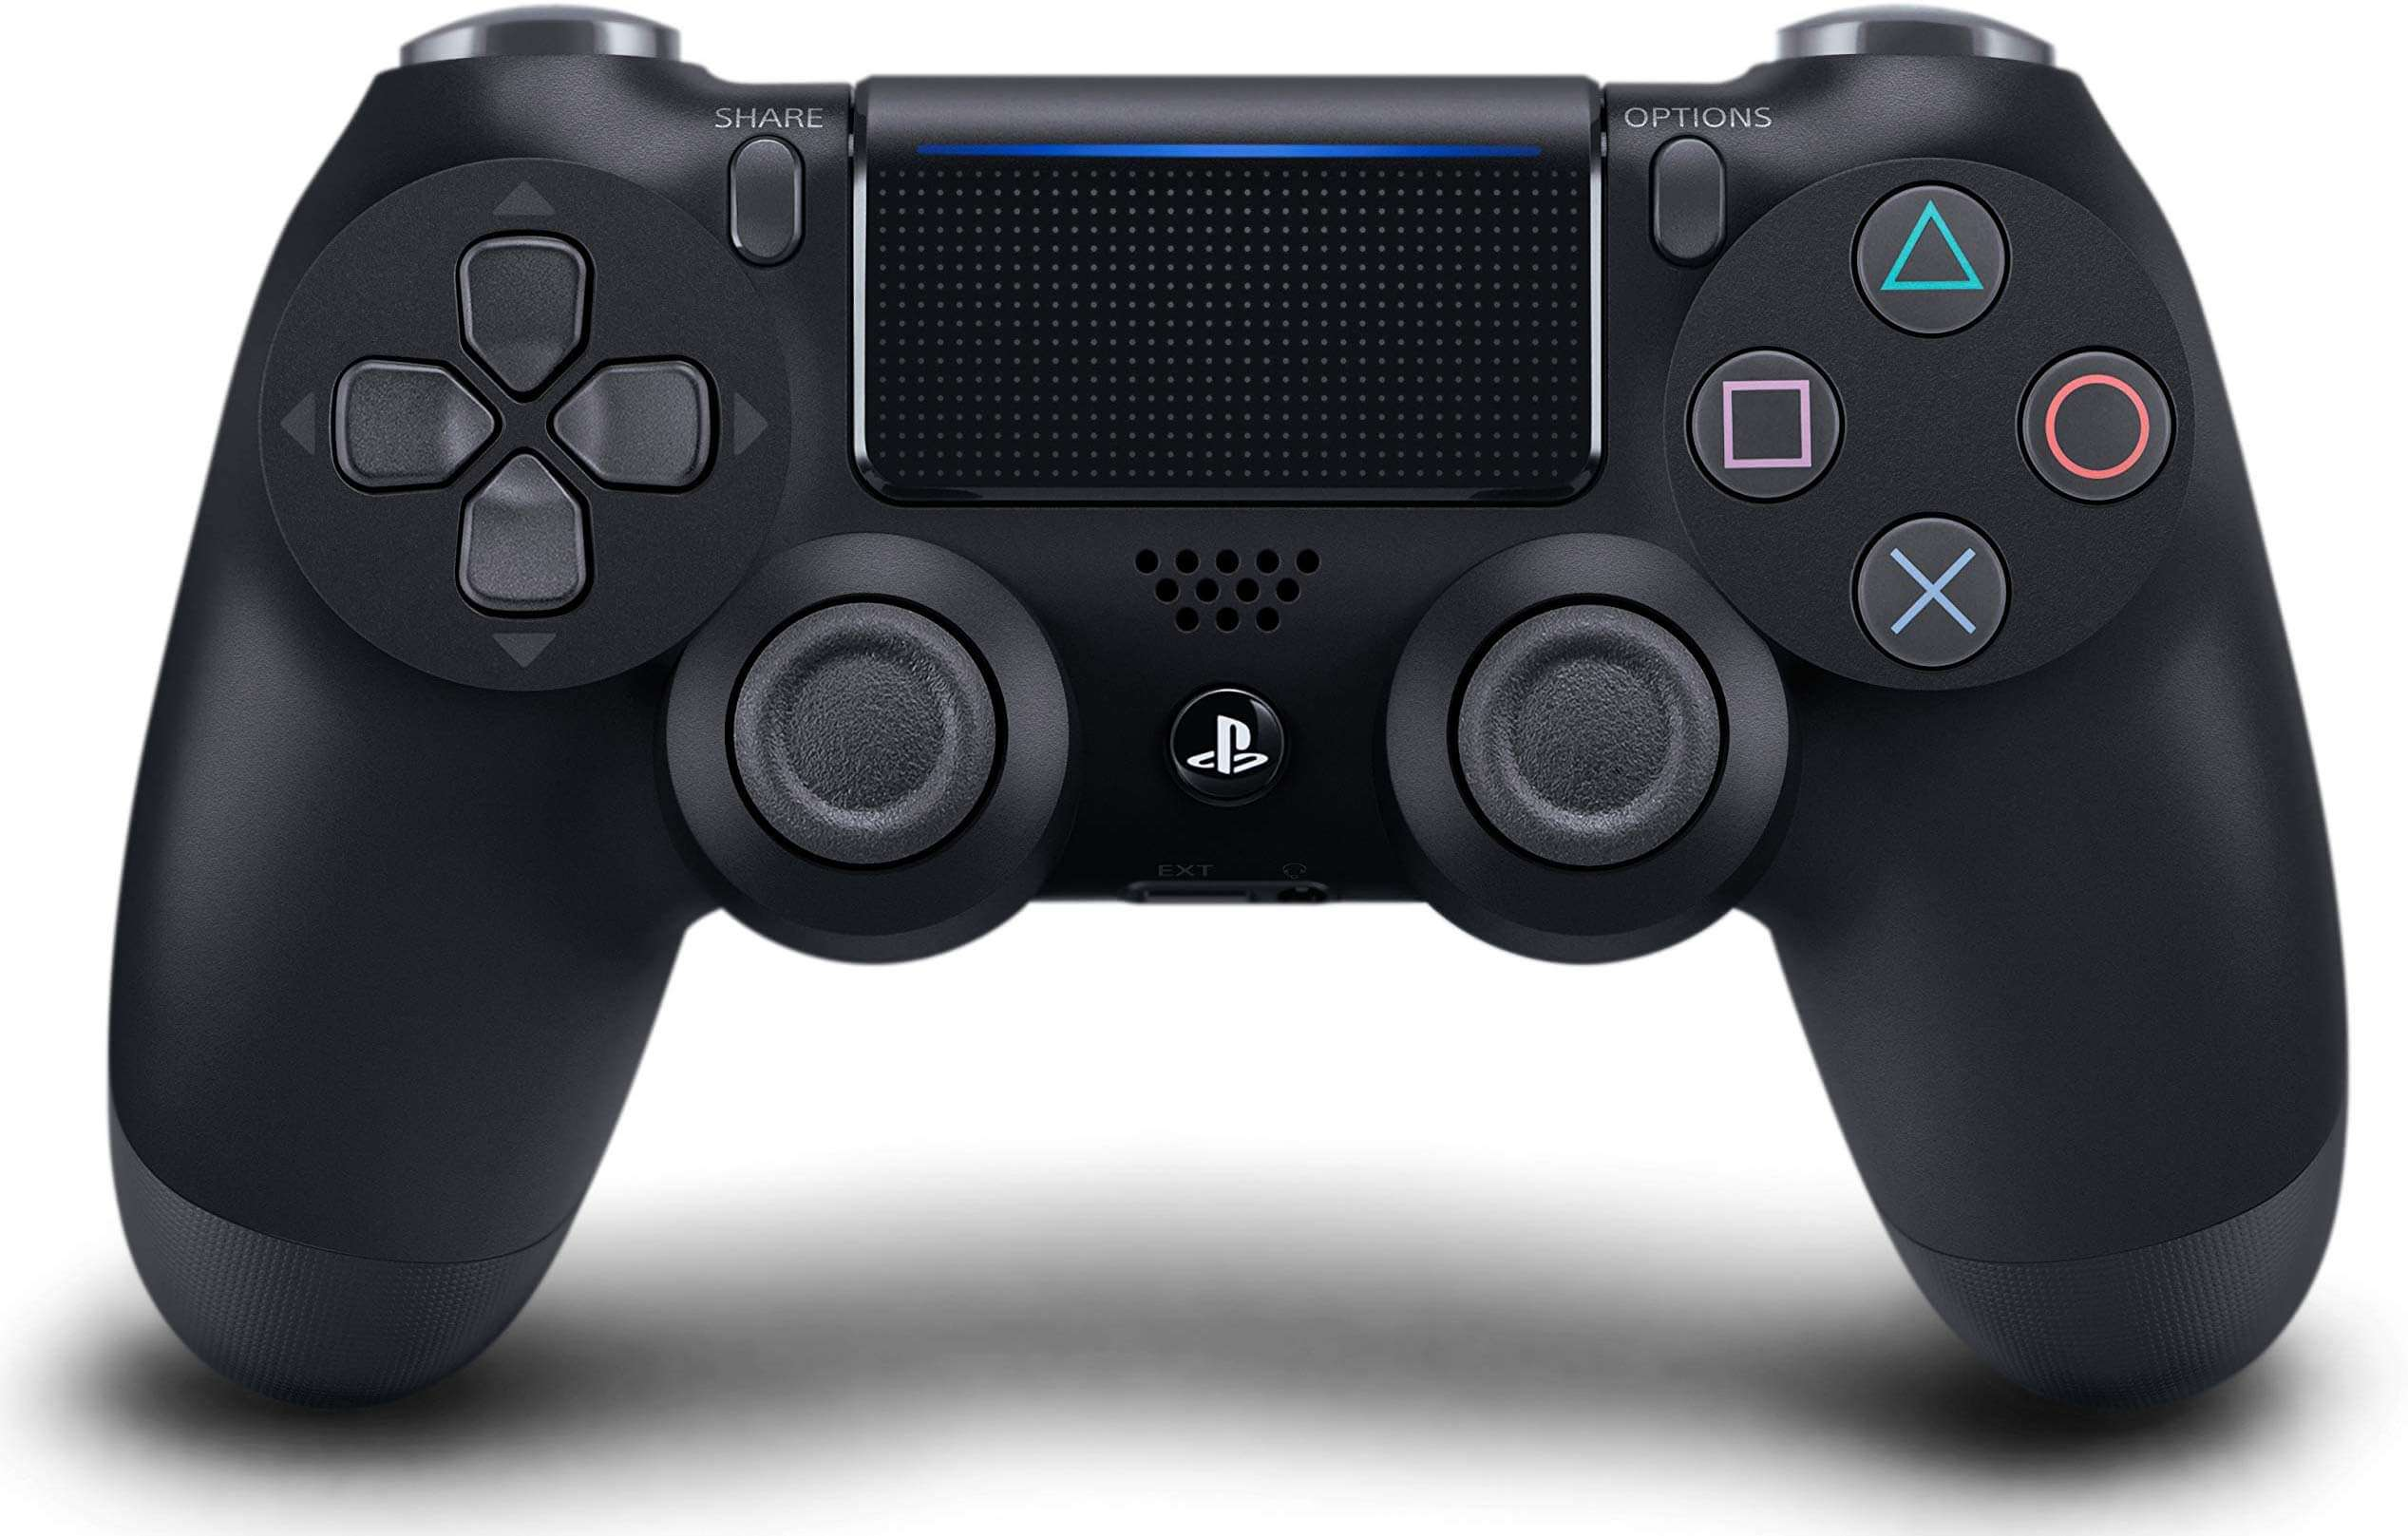 Sony DualShock 4 Wireless Controller For PlayStation 4 - Black